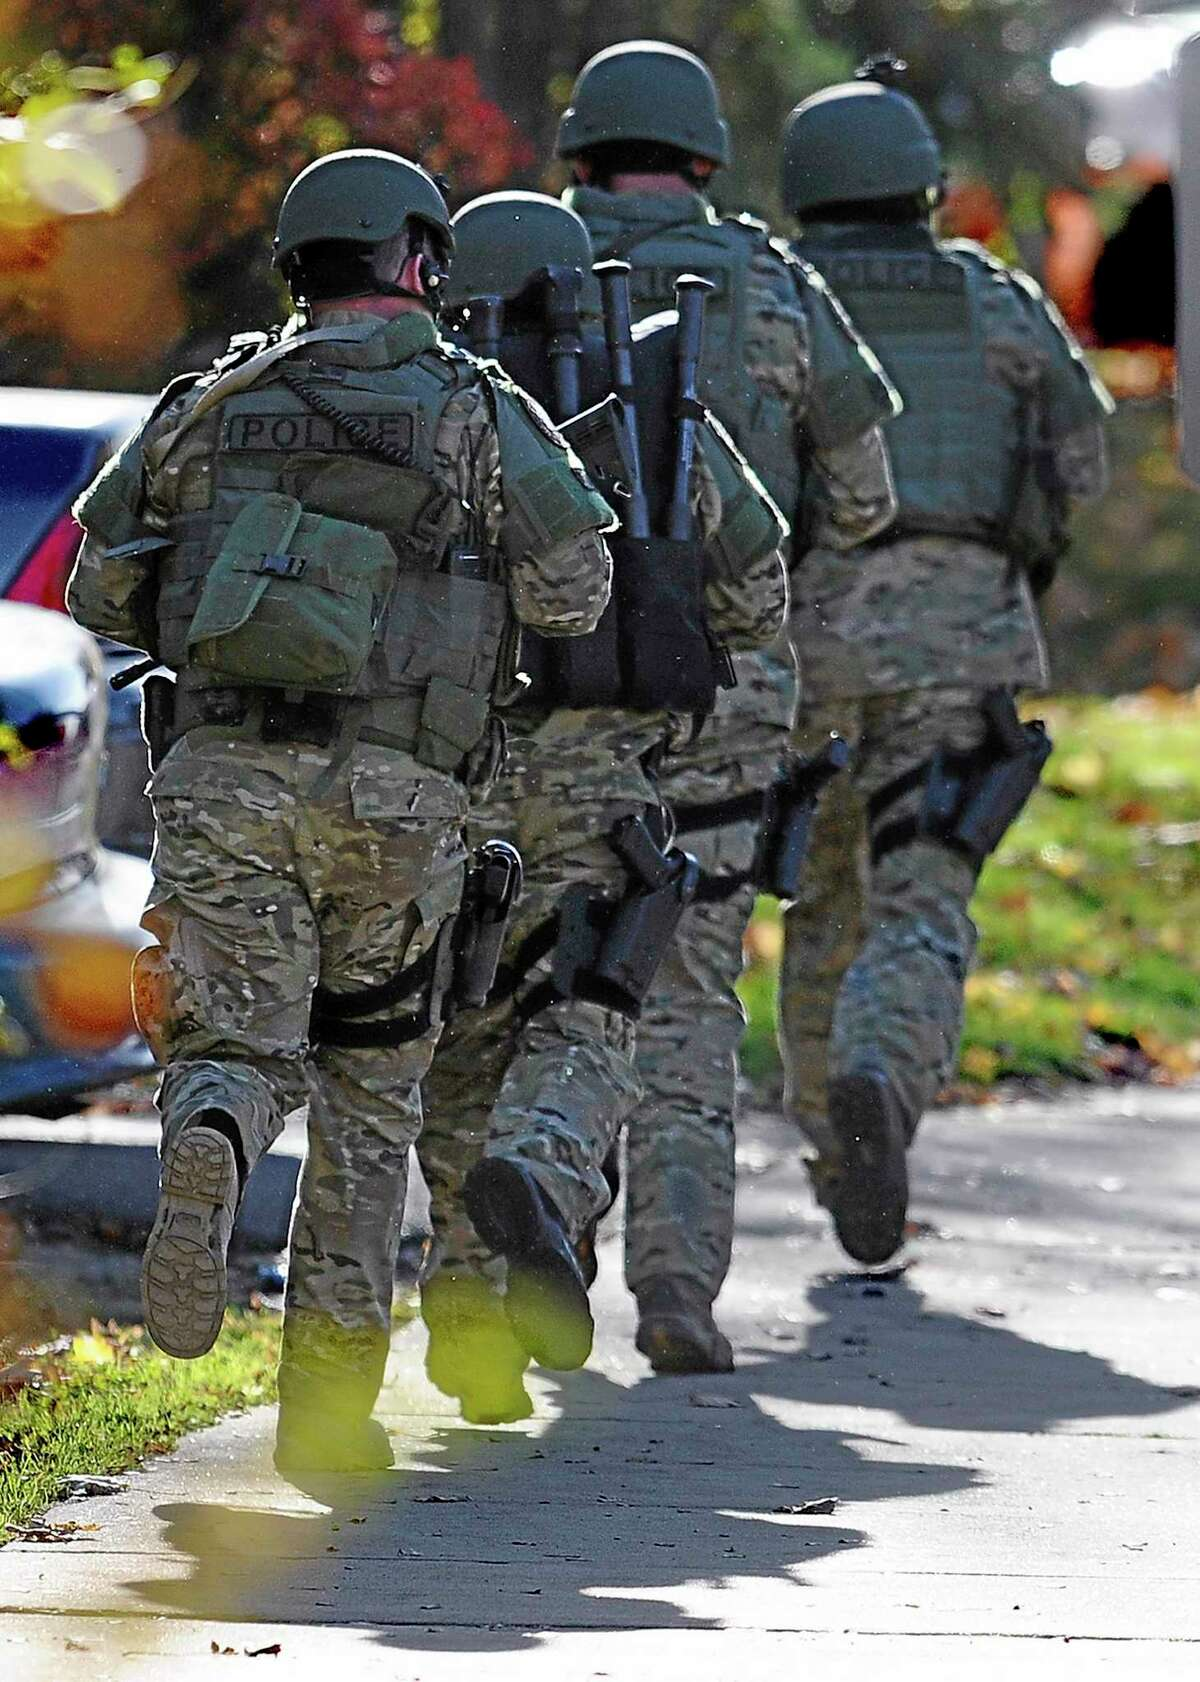 SWAT move in a line on the campus of Central Connecticut State University, Monday, Nov. 4, 2013, in New Britain, Conn. An armed man was spotted on the campus of Central Connecticut State University, prompting a schoolwide lockdown and warnings for students to stay away from windows as police SWAT teams swarmed the area. University spokesman Mark McLaughlin said,